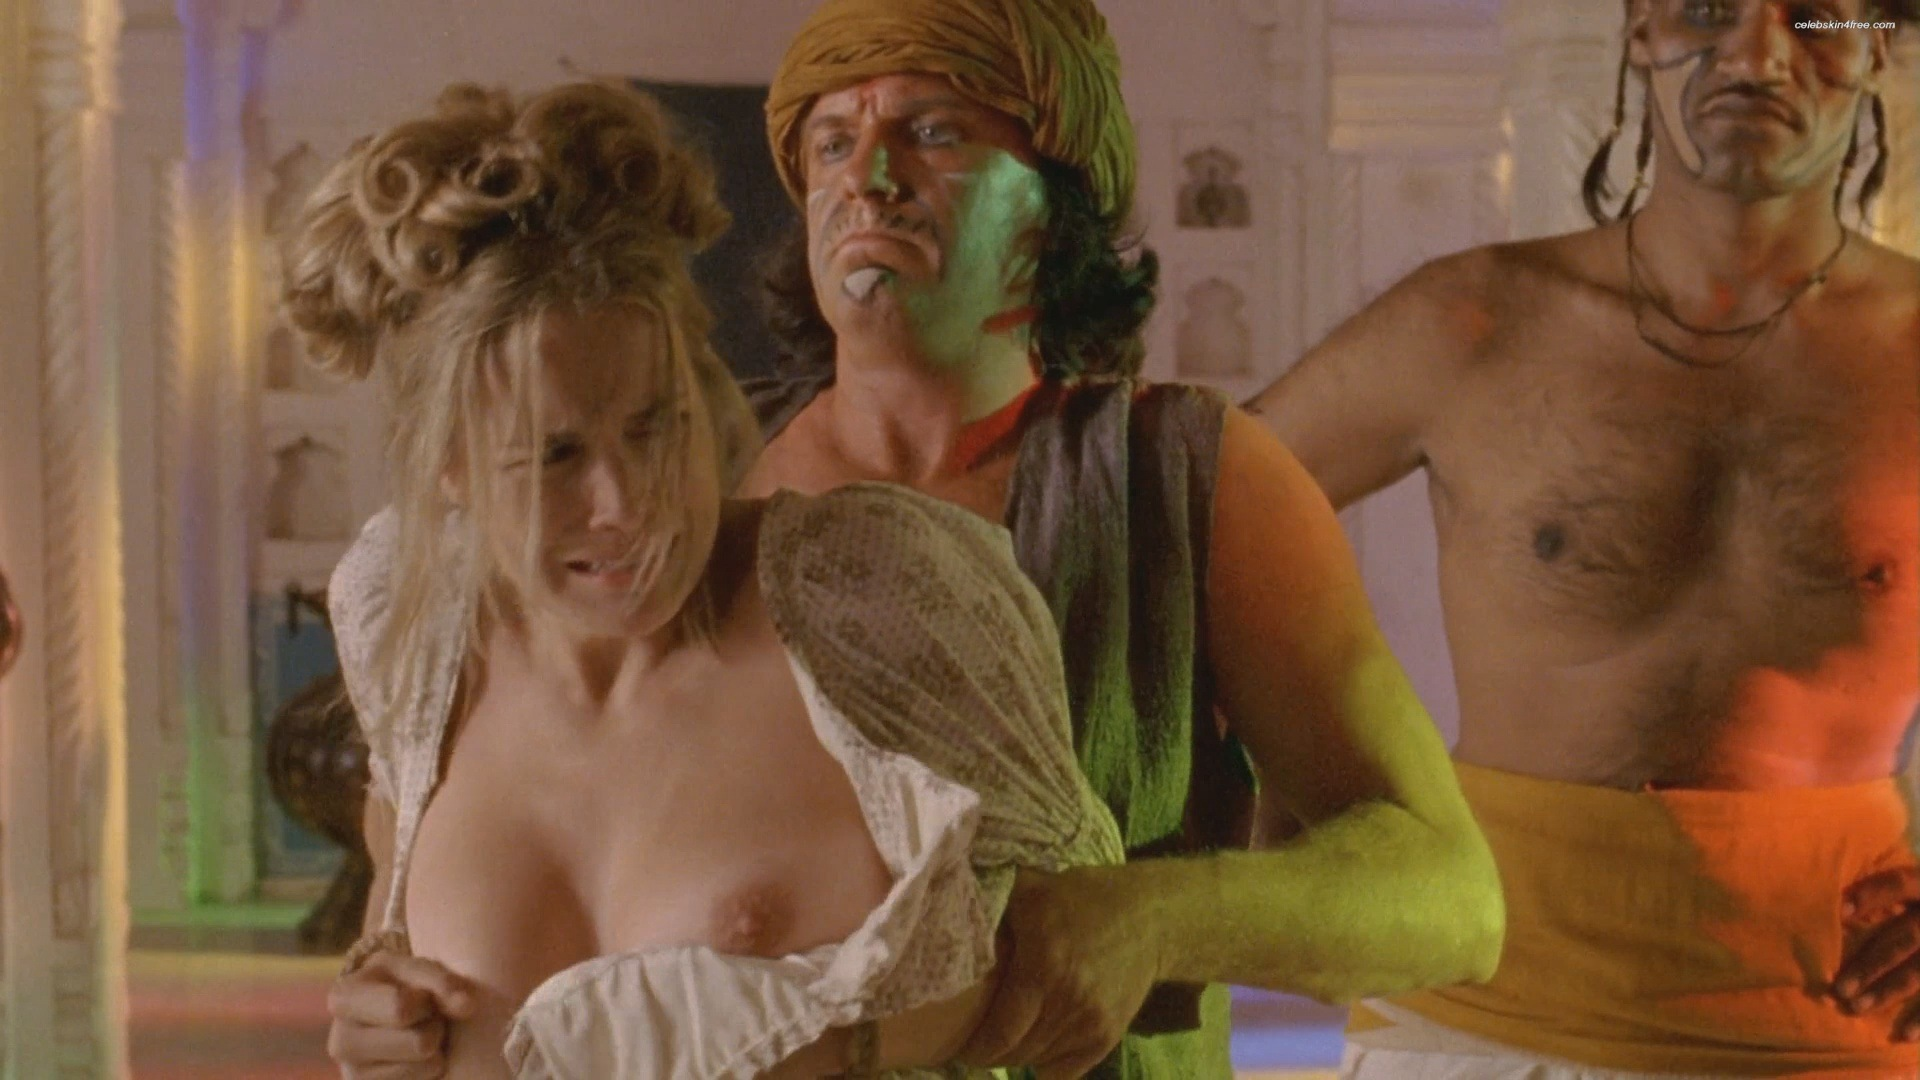 Milla jovovich the fifth element nude